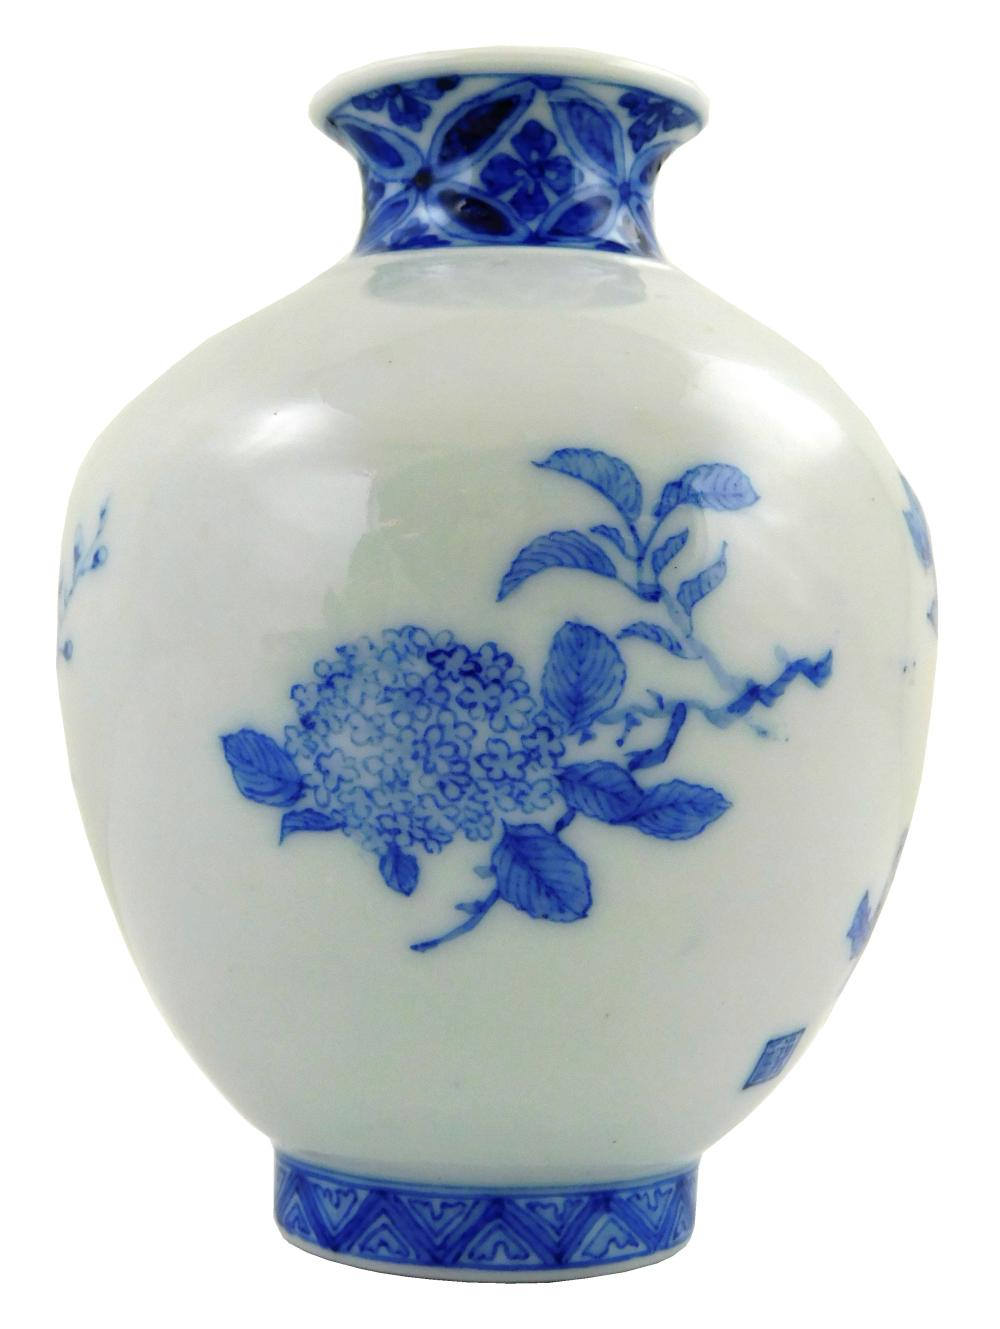 ASIAN: Japanese porcelain, 20th C., including: vase with blue and white floral decoration, signed, four section cylindrical stacking...